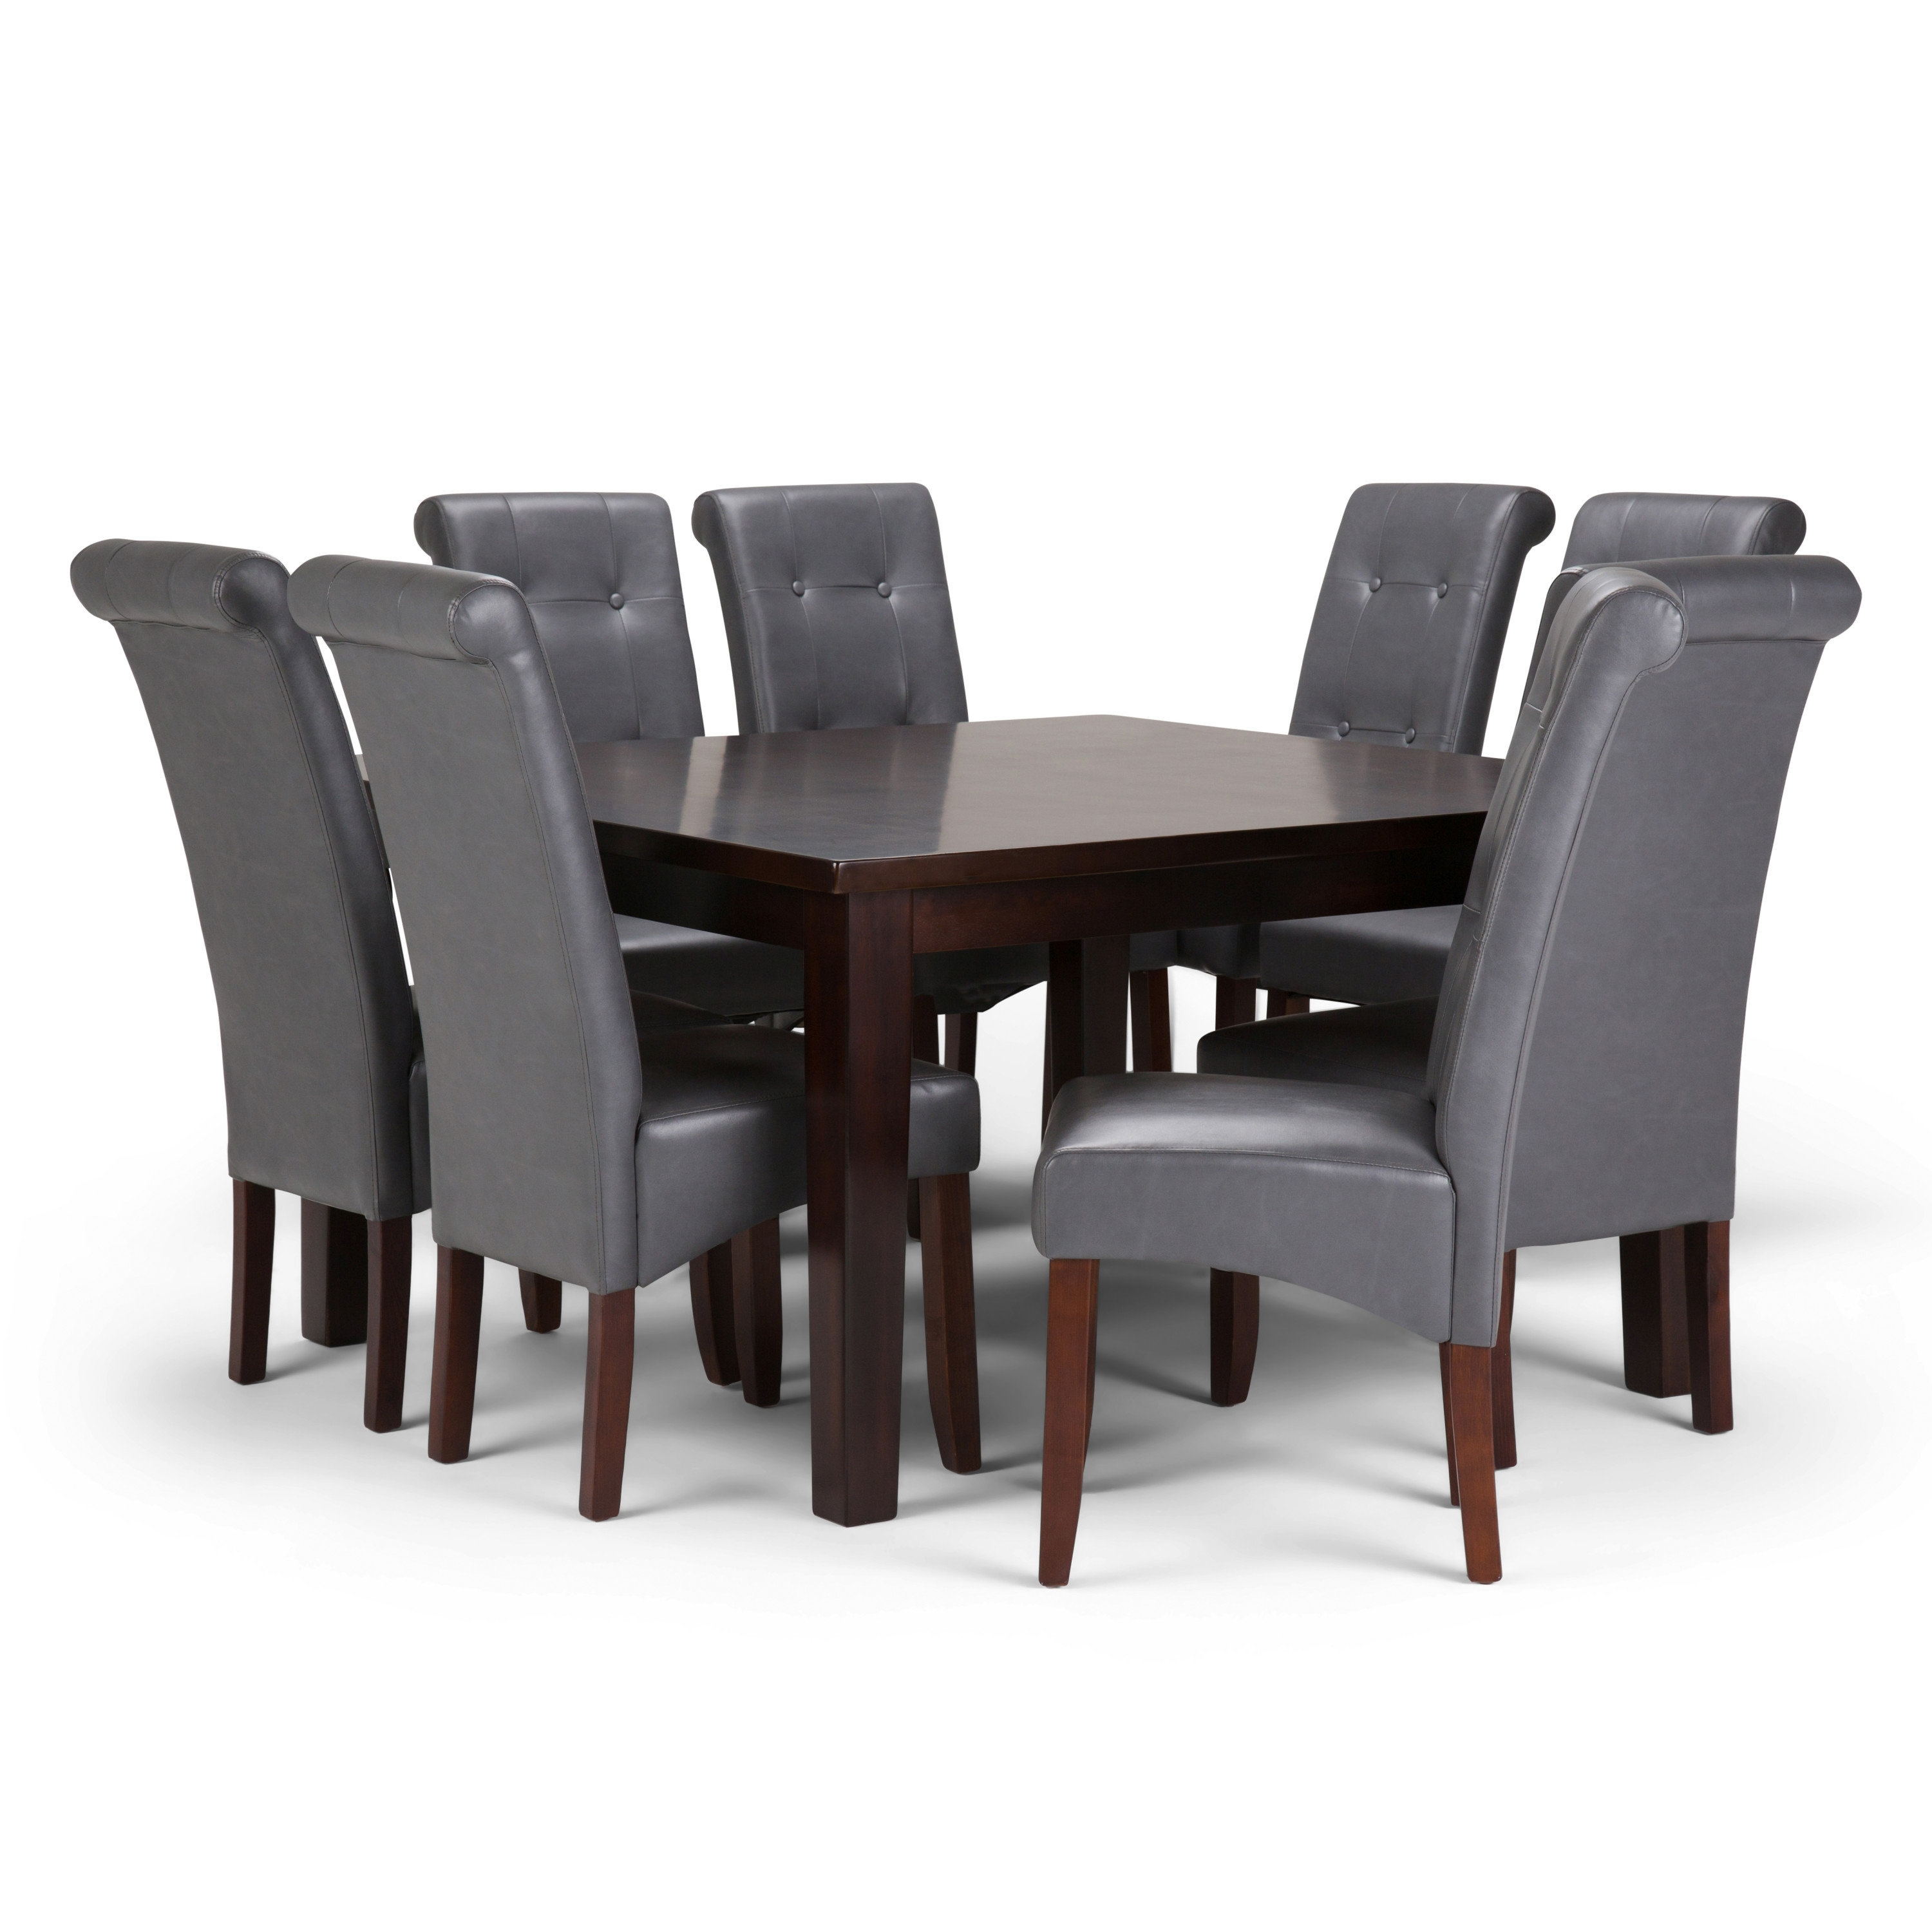 Simpli Home Cosmopolitan 9 Piece Dining Set | Wayfair Inside 2017 Walden 7 Piece Extension Dining Sets (Image 10 of 20)